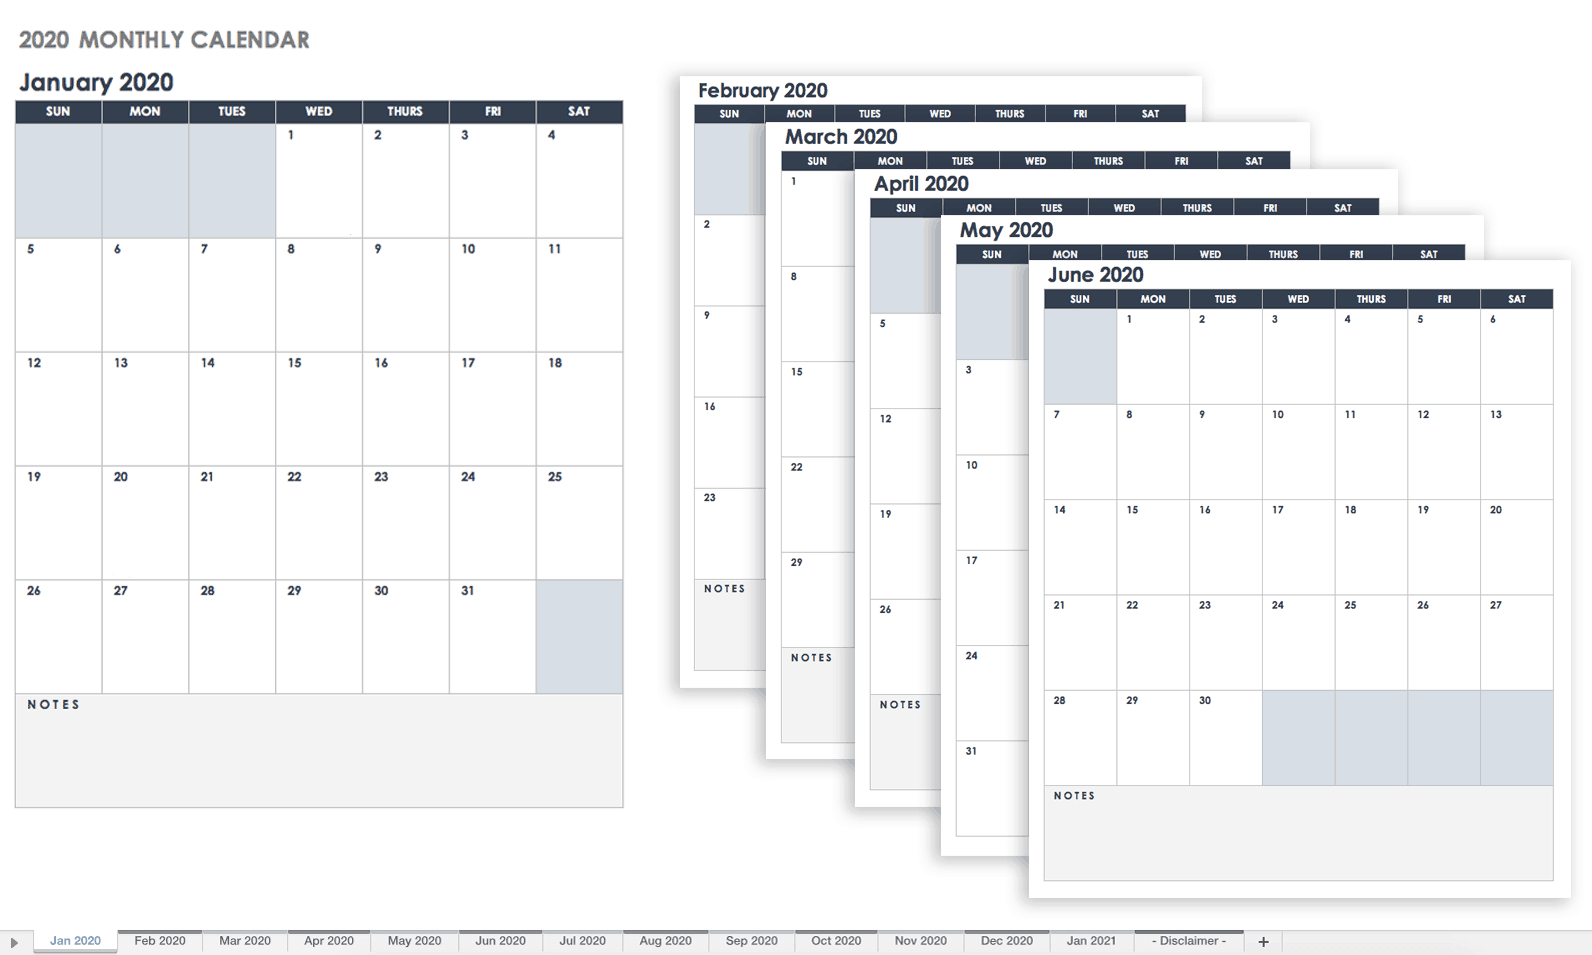 Free Google Calendar Templates | Smartsheet Calendars That You Can Fill In